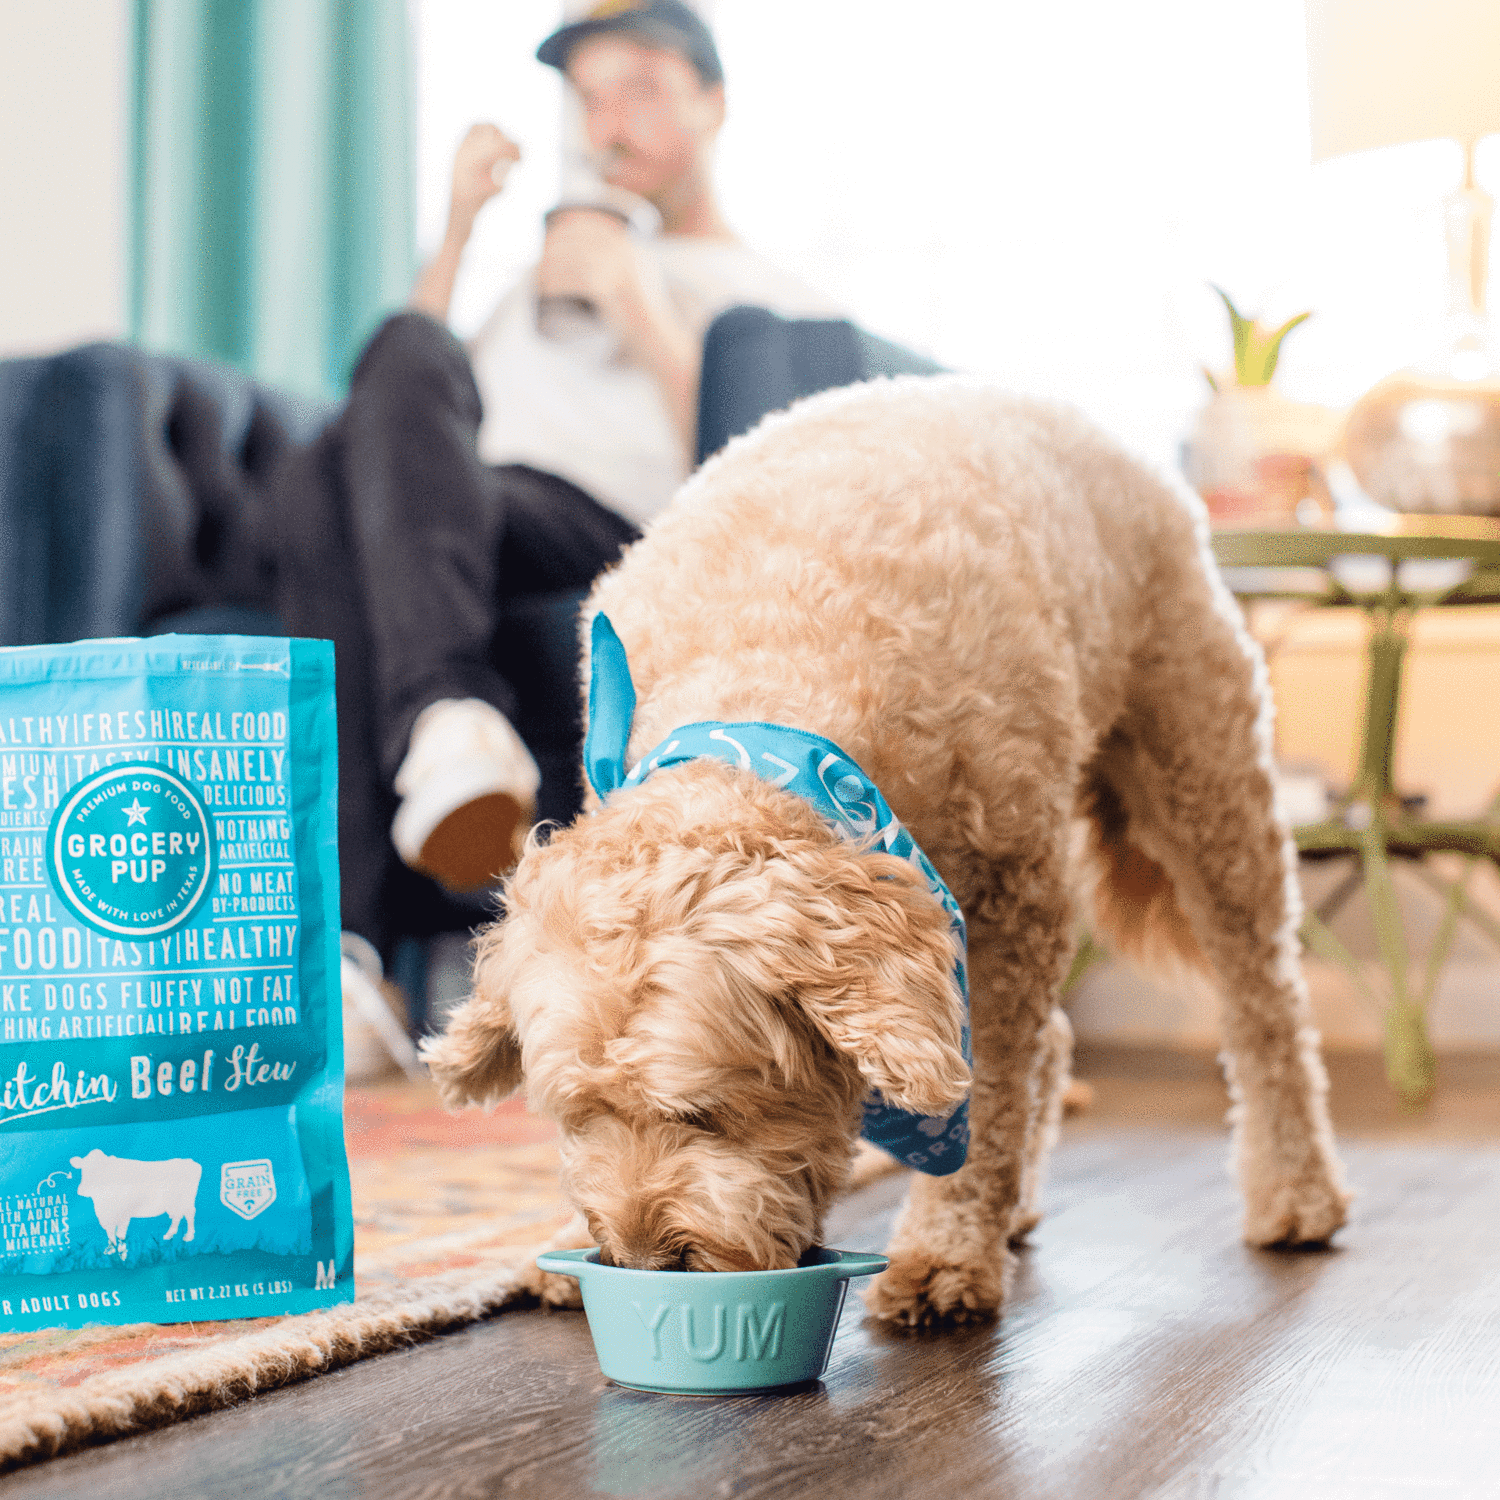 Grocery Pup Coupon: Get 30% Off & More!